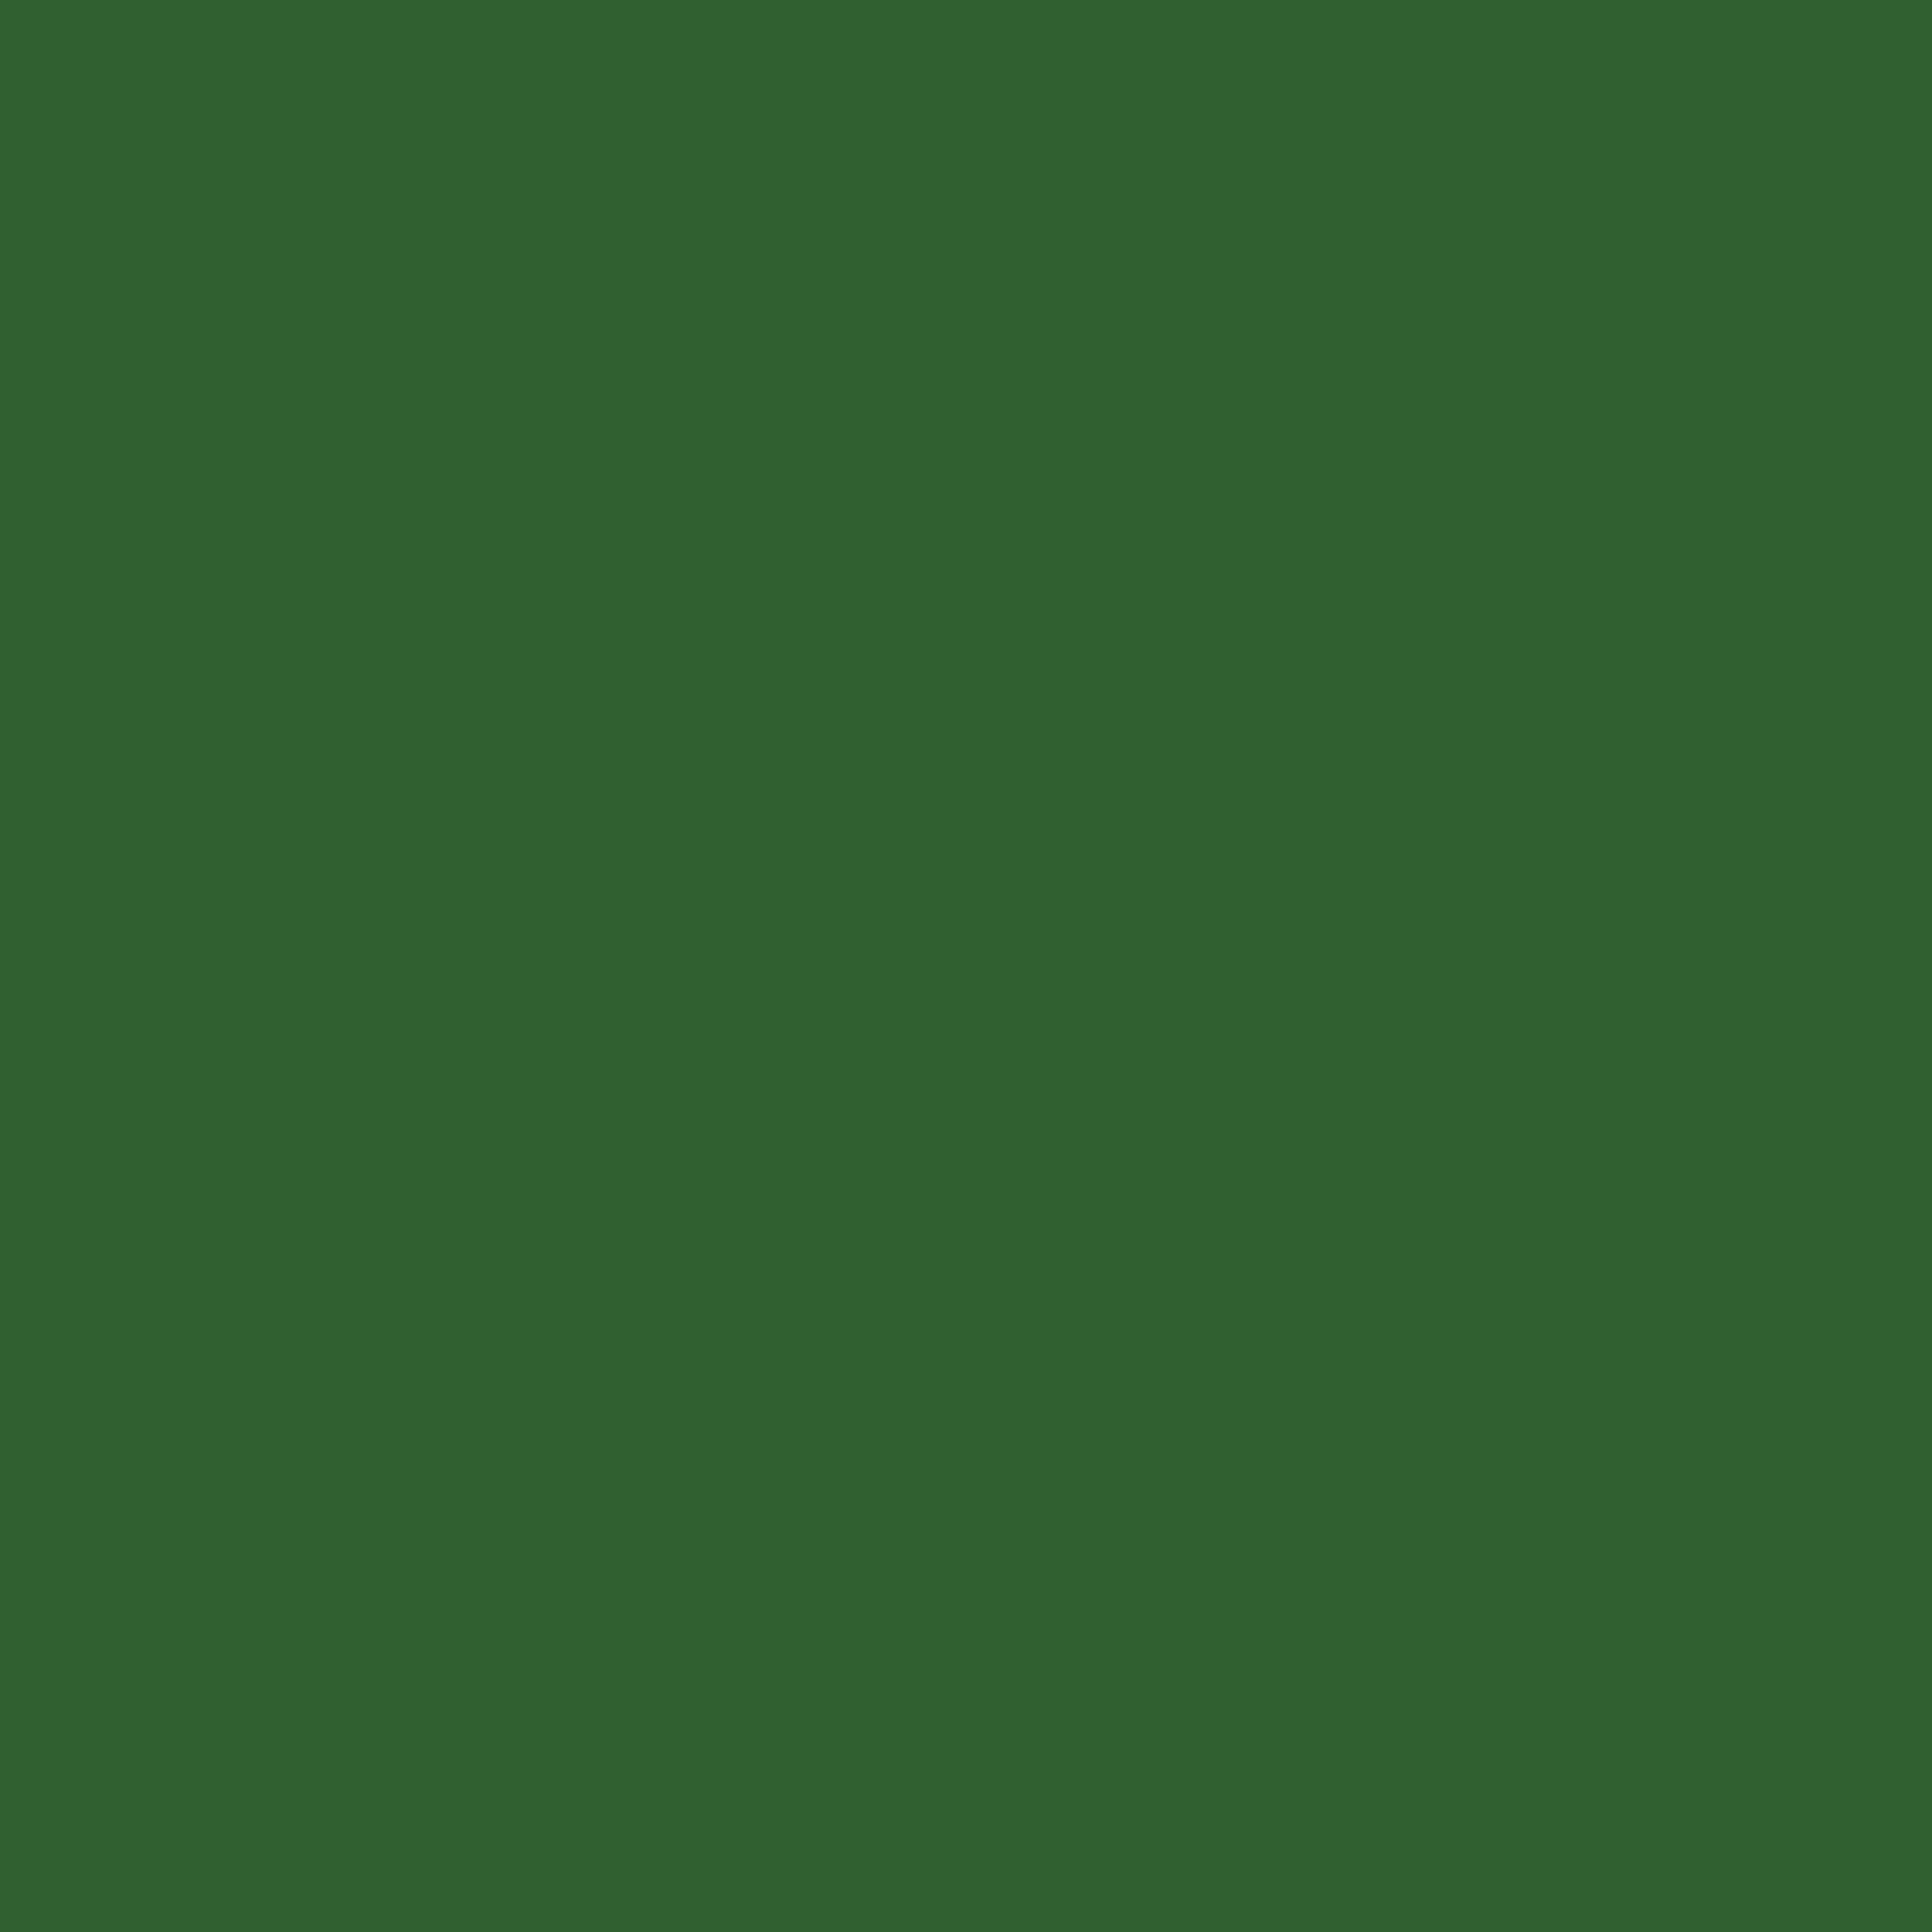 3600x3600 Mughal Green Solid Color Background